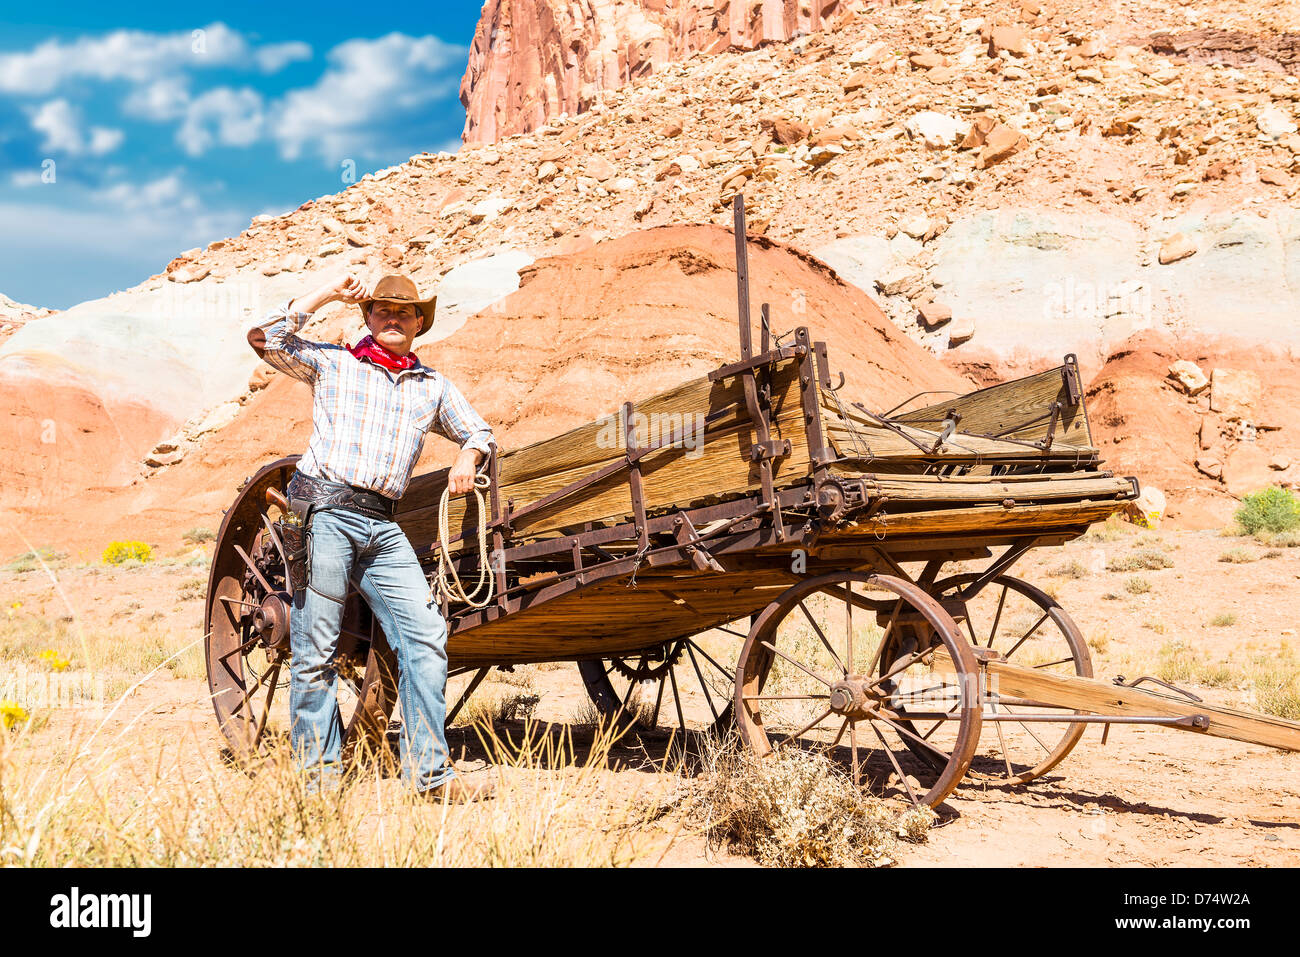 SOUTh WEST - A cowboy takes time to rest and reflect. - Stock Image